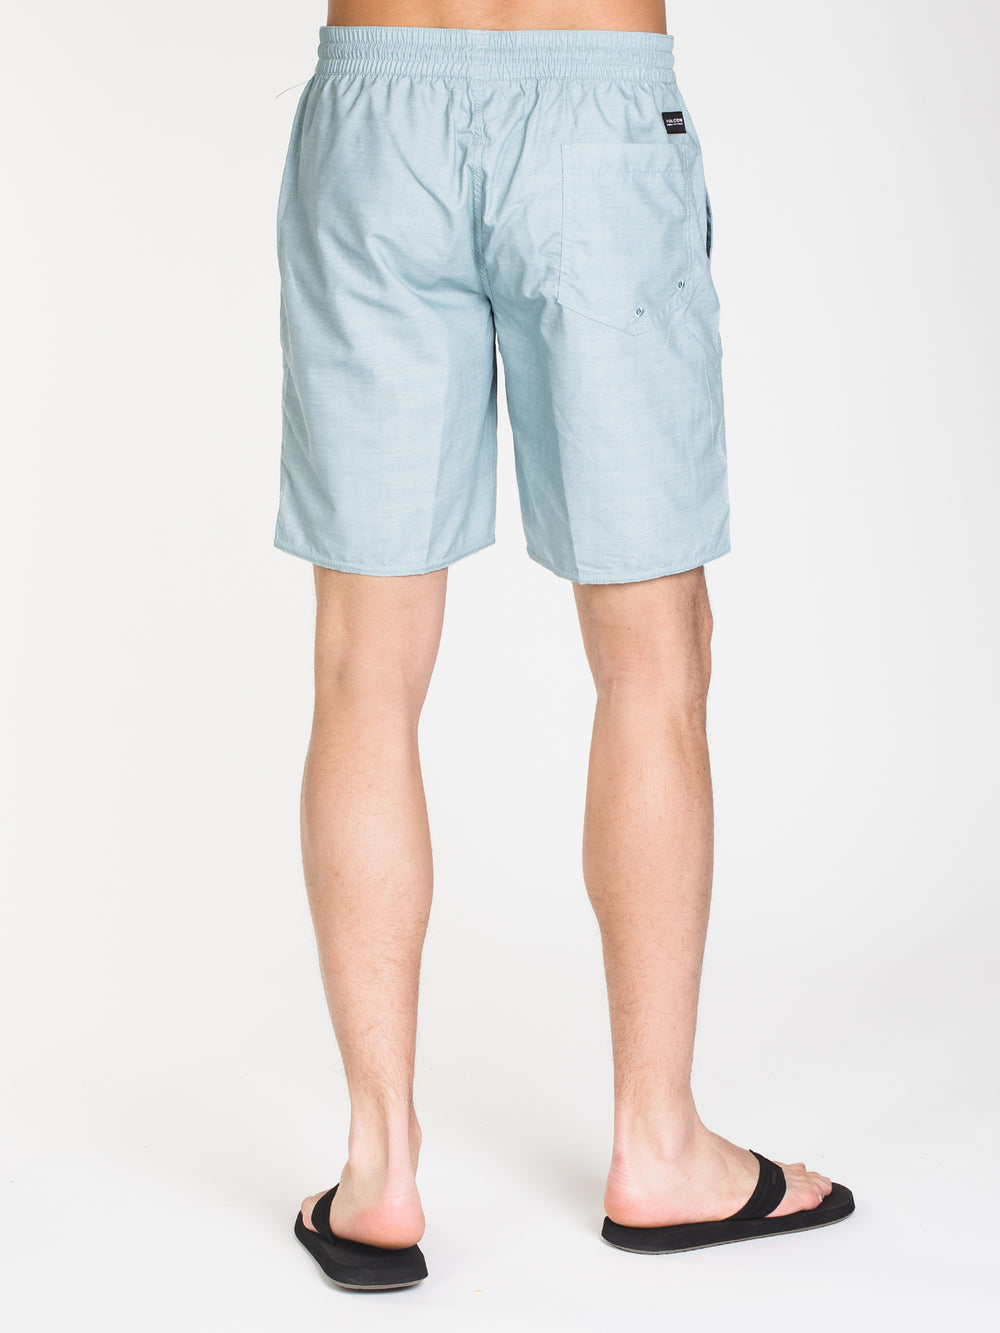 MENS HORIZON 19' VTRUNK - BLUE